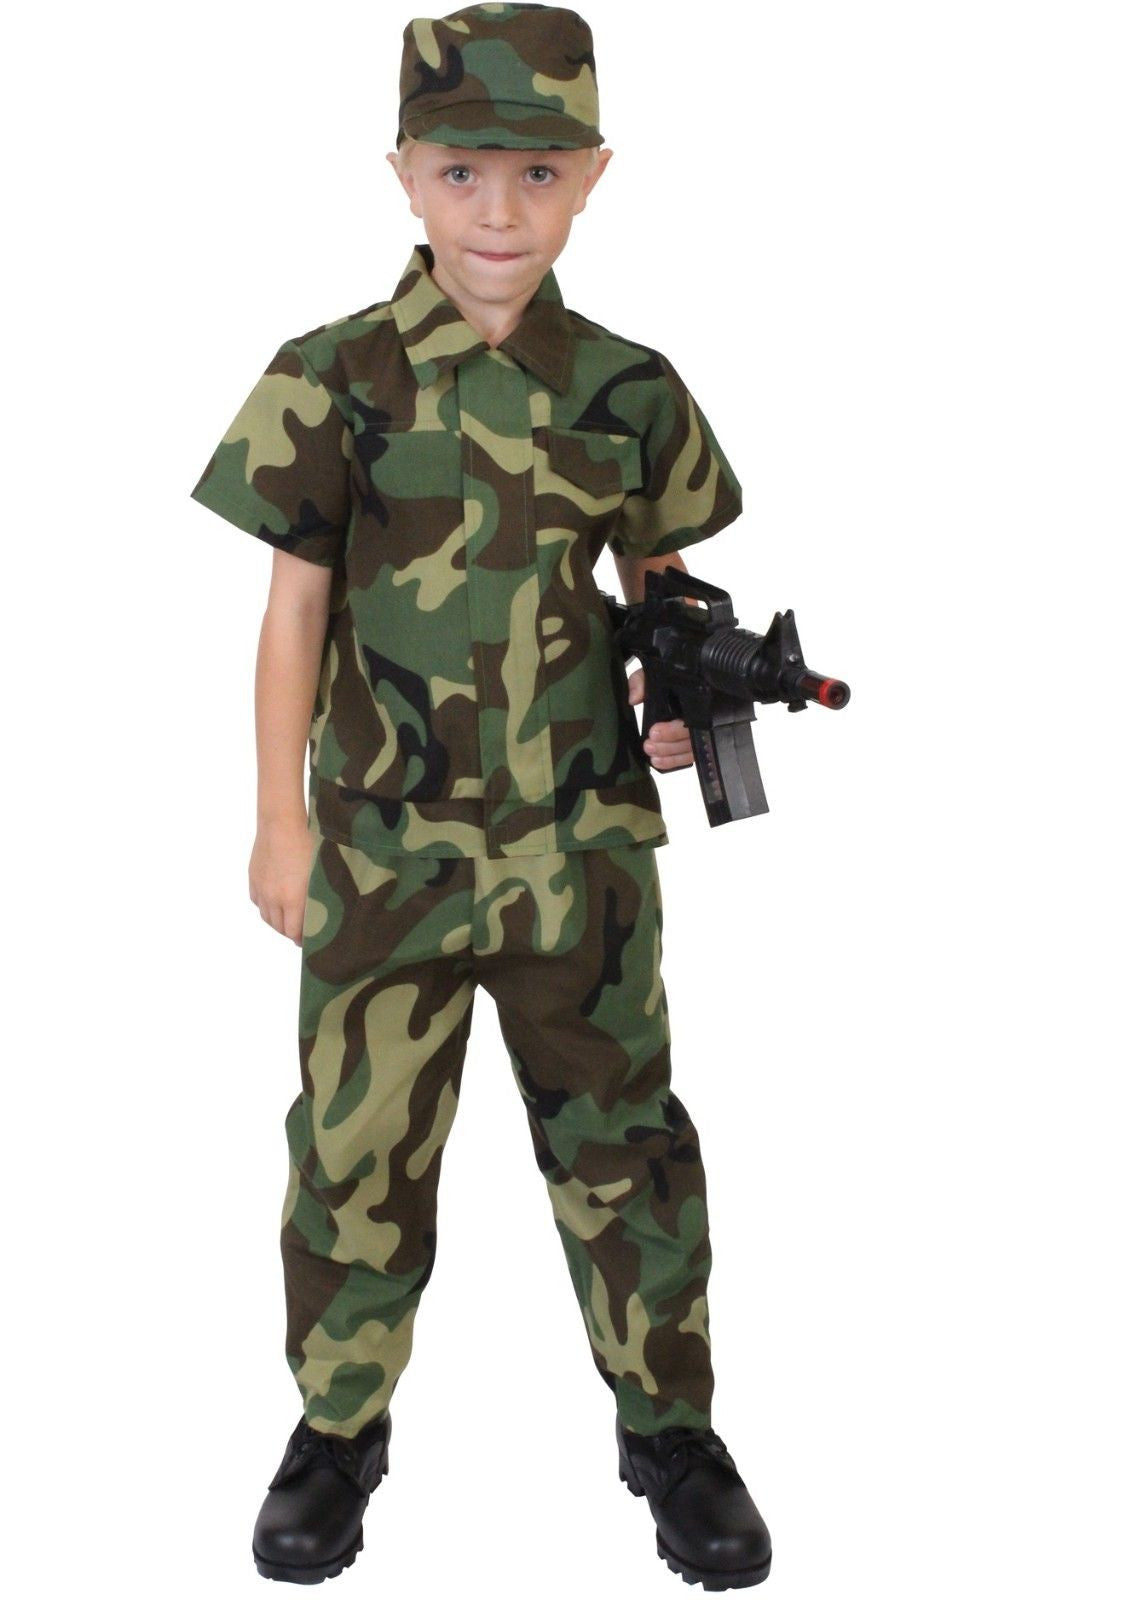 Kids Soldier Costume - Child Camouflage Uniform - Halloween Dress Up Play Time  sc 1 st  Grunt Force & Kids Soldier Costume - Child Camouflage Uniform - Halloween Dress Up ...